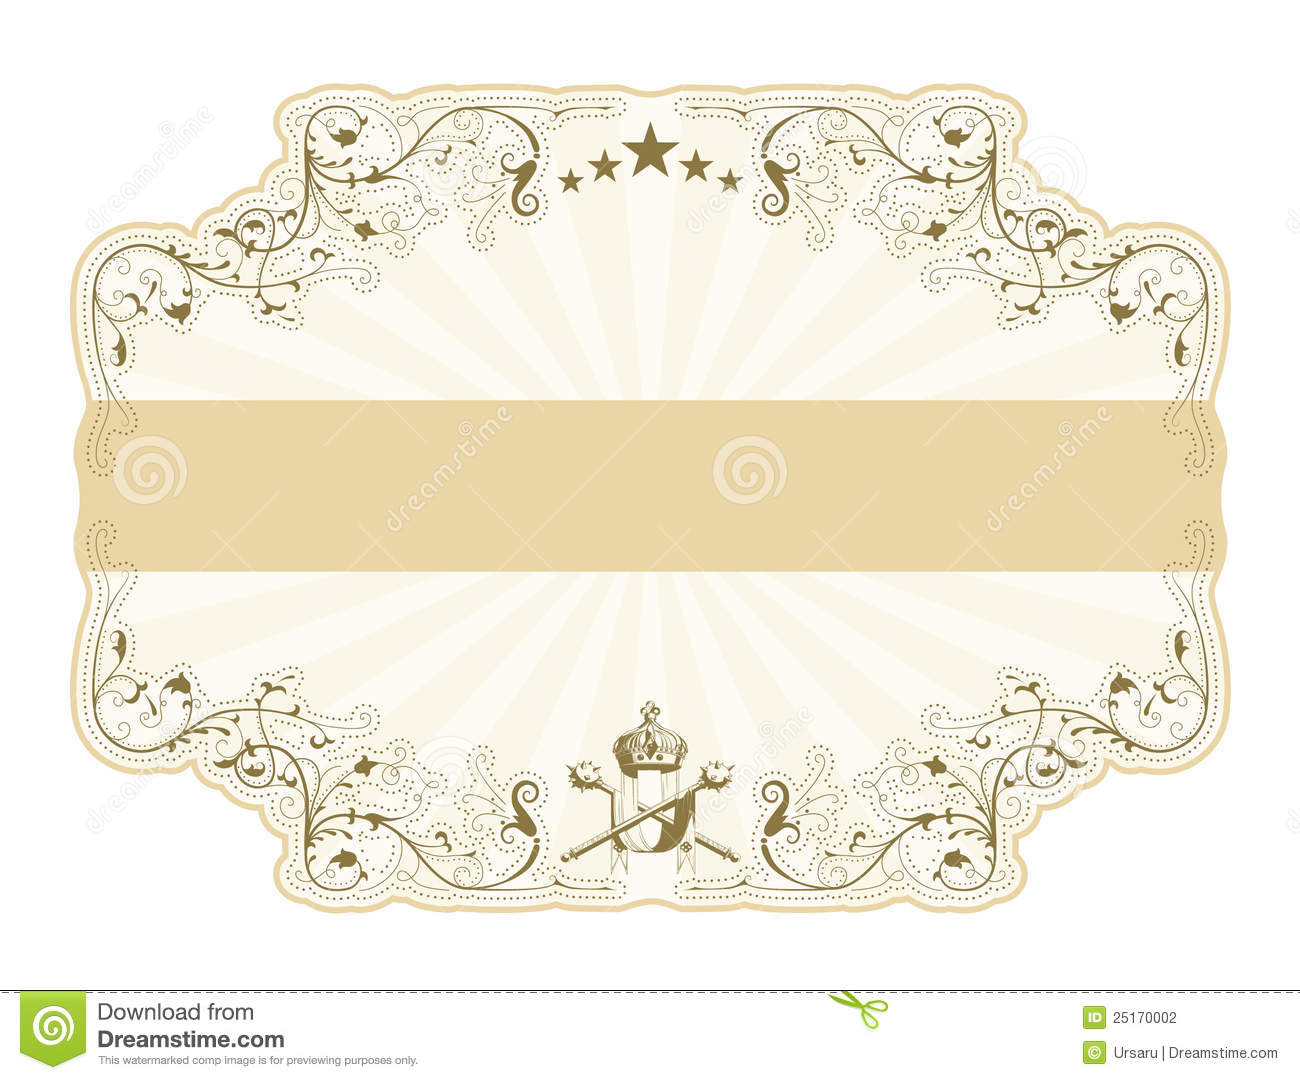 Star background vector download free vector art stock graphics - Vintage Label With Rays Stock Photography Image 25170002